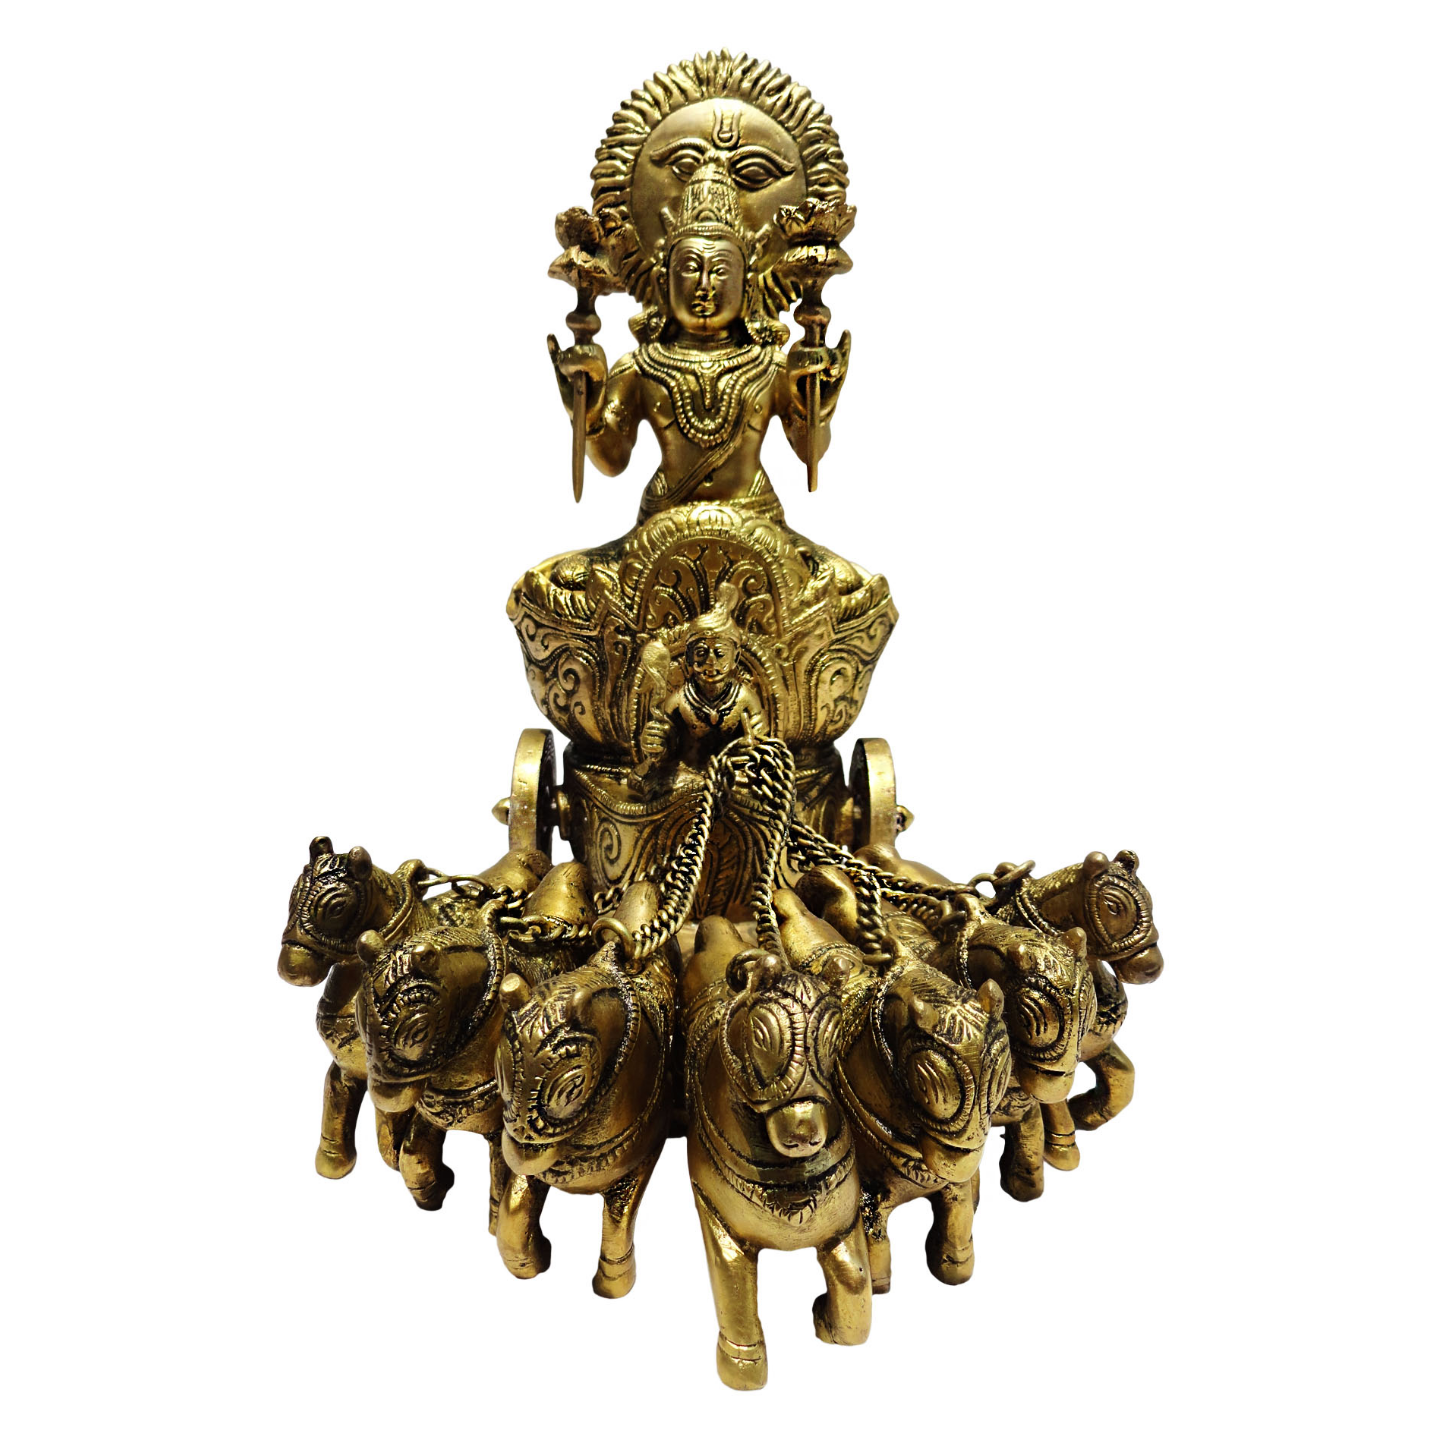 Brass Surya Dev Rath In Antique Finish -11 Inch BS191